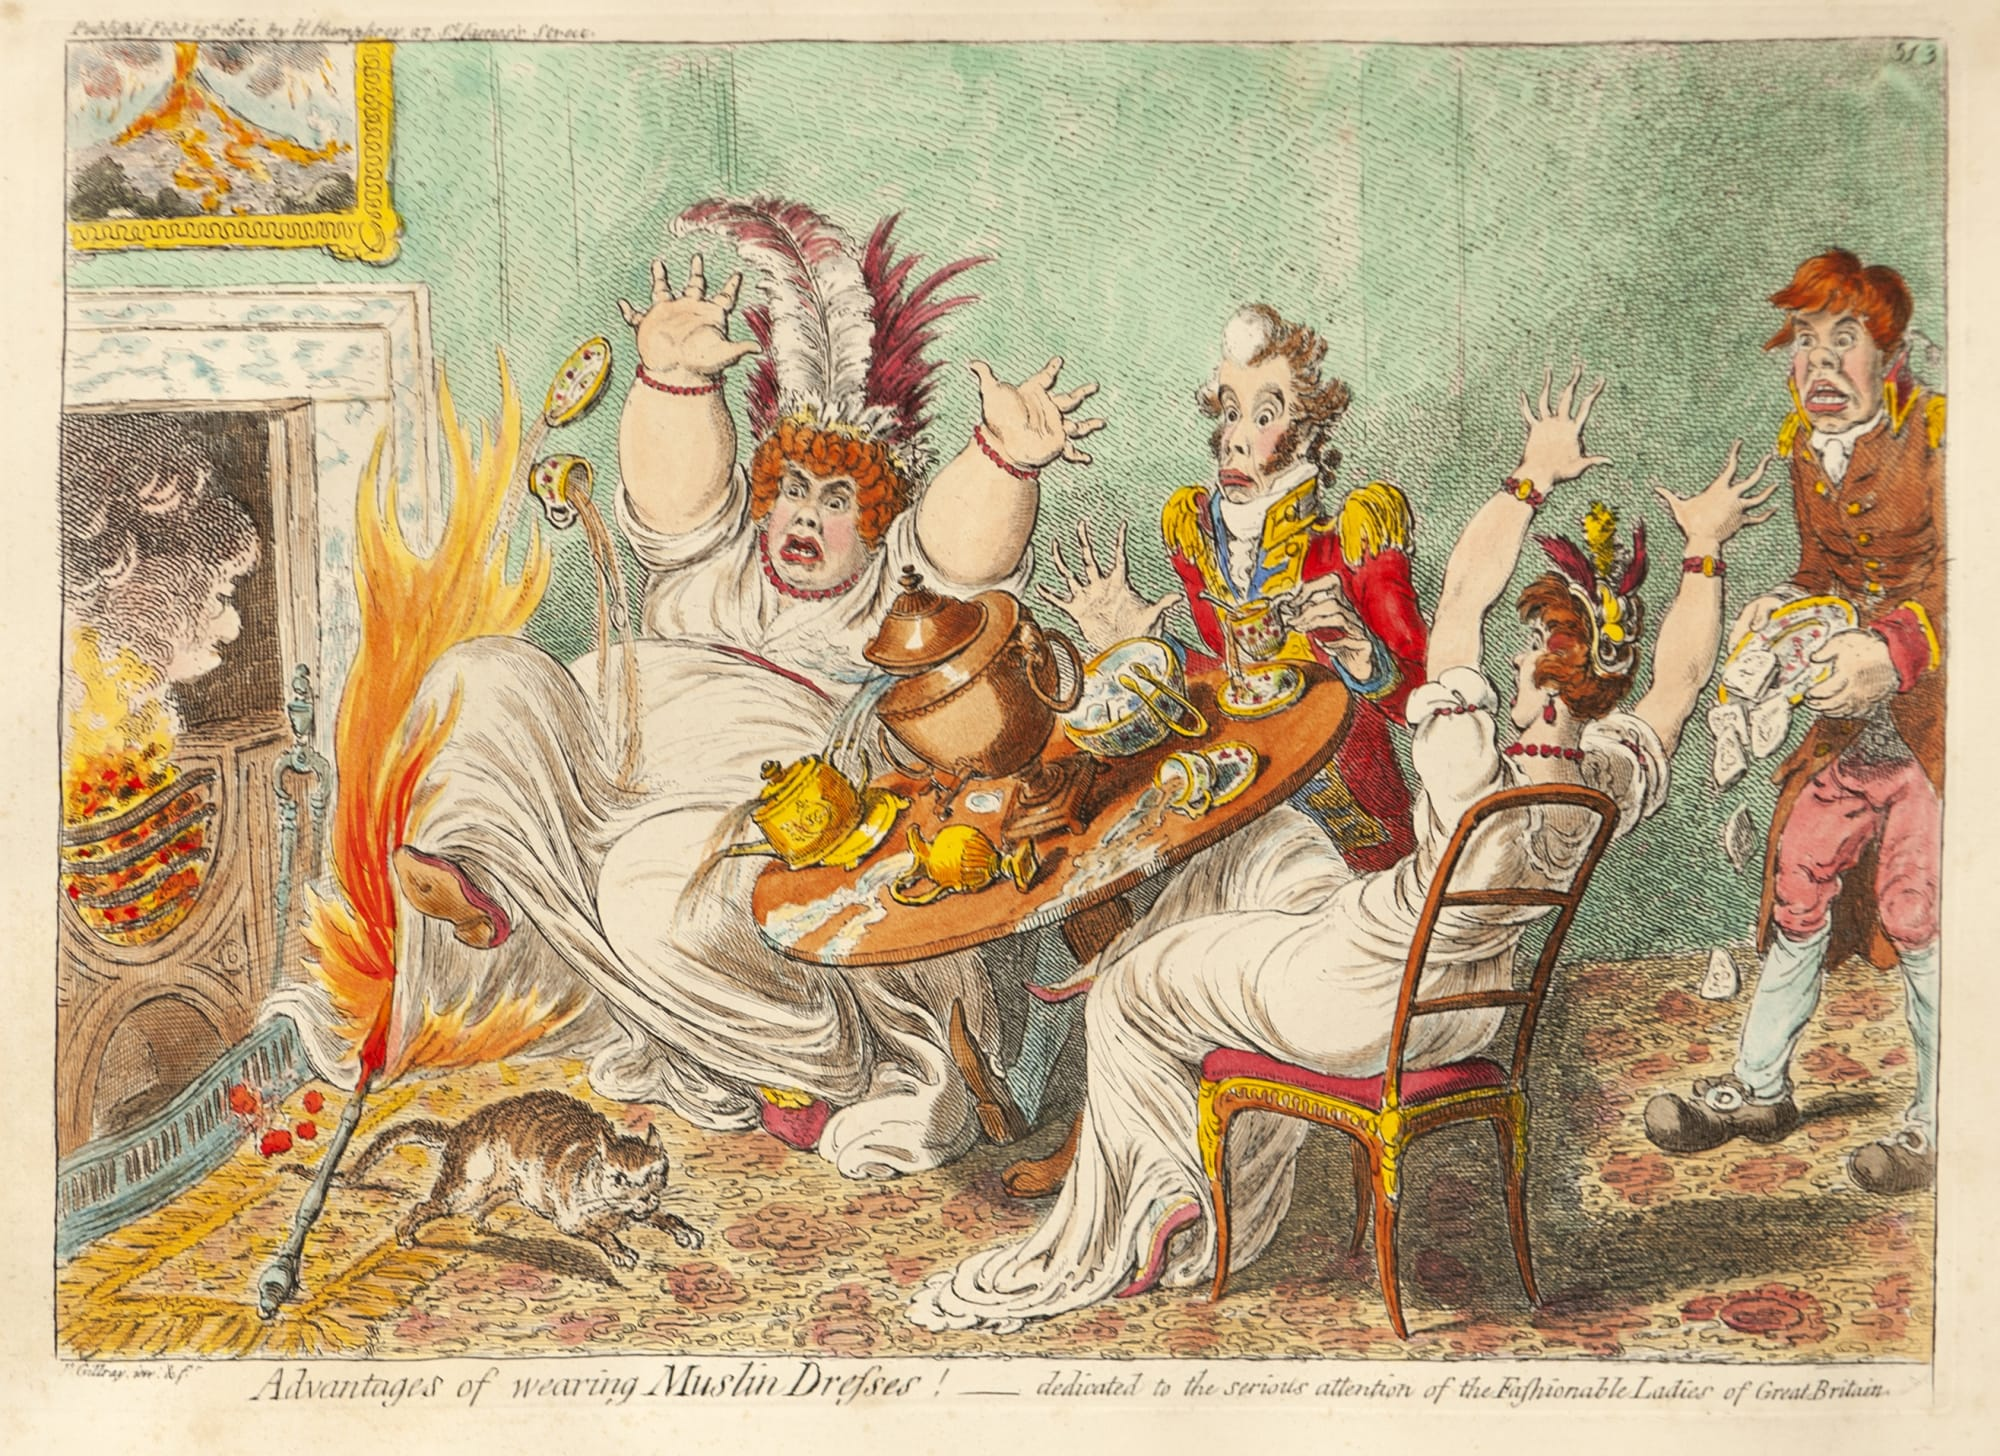 James Gillray